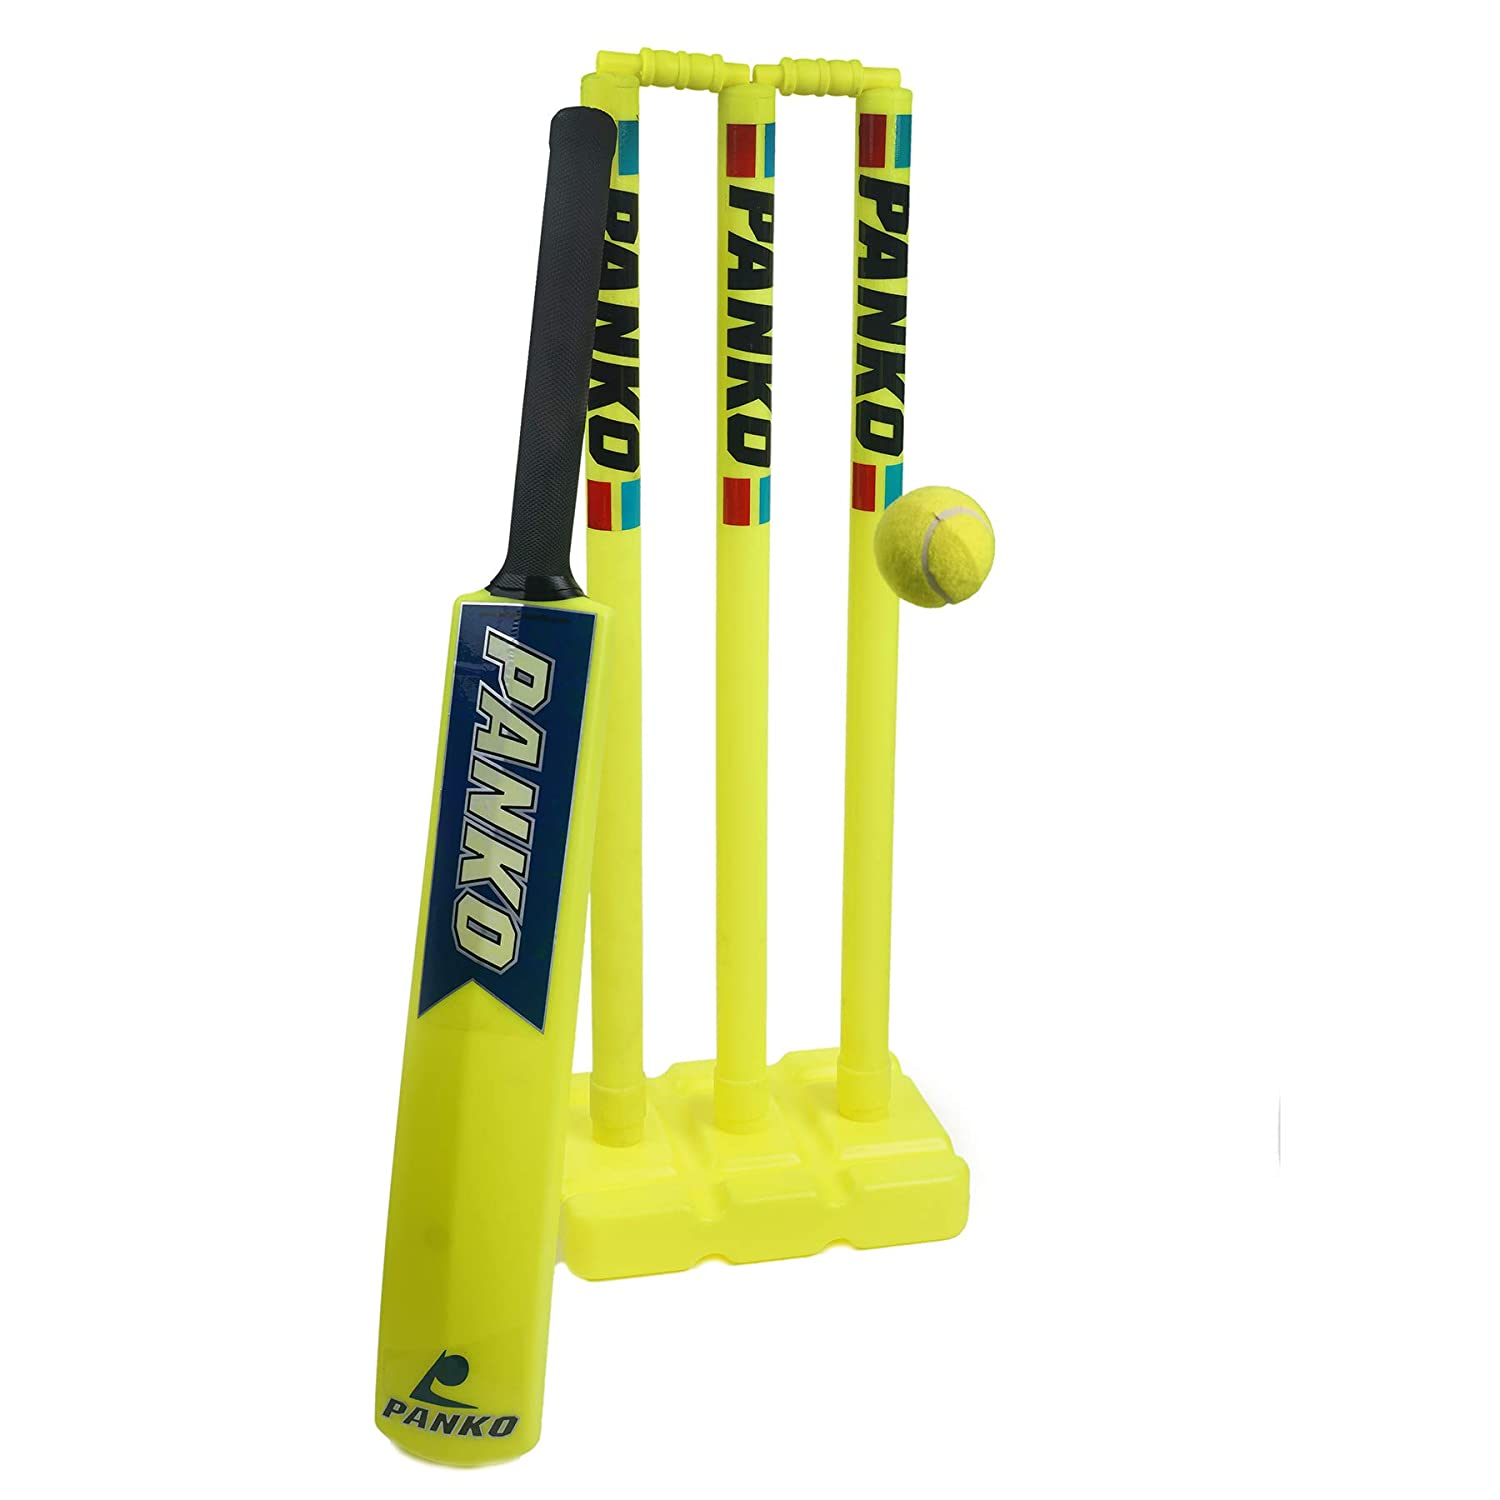 Cricket Plastic Stump Set - Best Quality